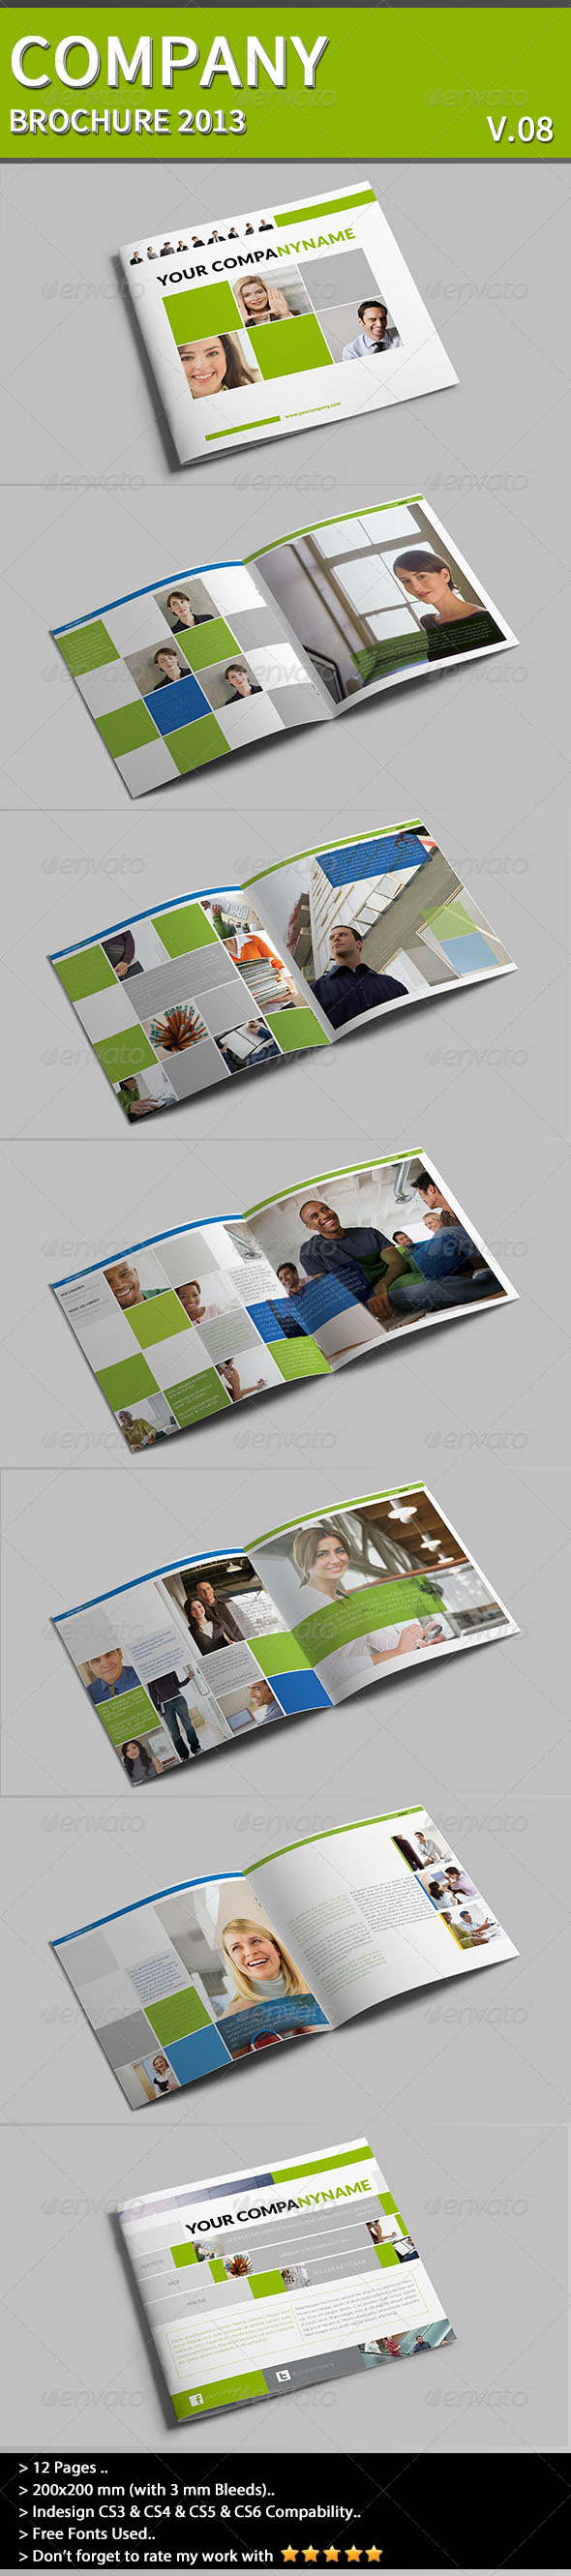 Company Brochure Part 08 - Corporate Business Cards